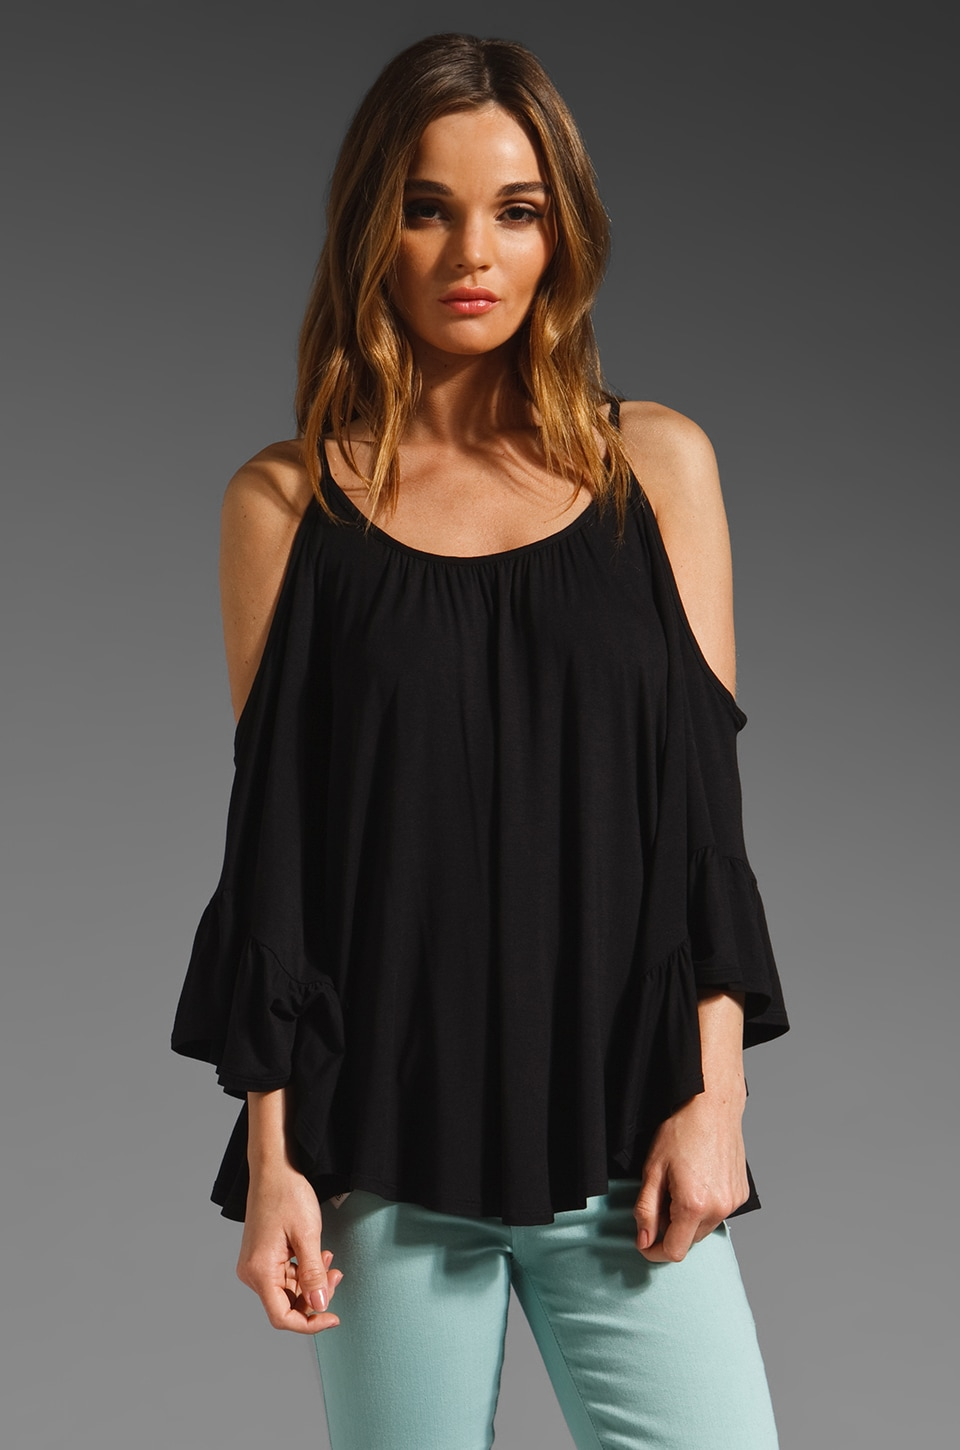 James & Joy Angela Open Shoulder Top in Black